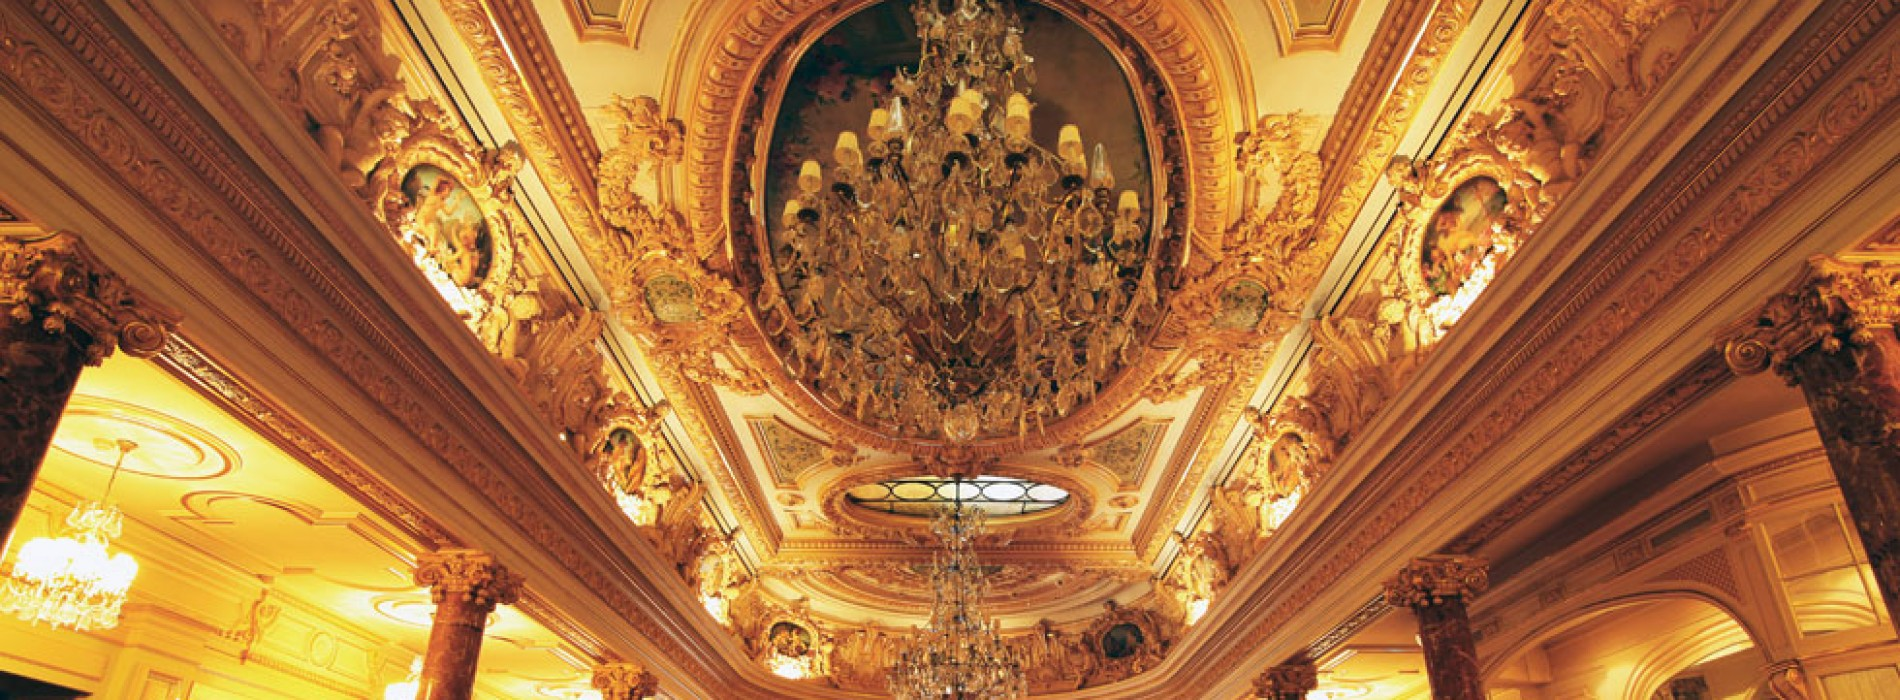 Explore Monaco's majestic beauty and Opulence